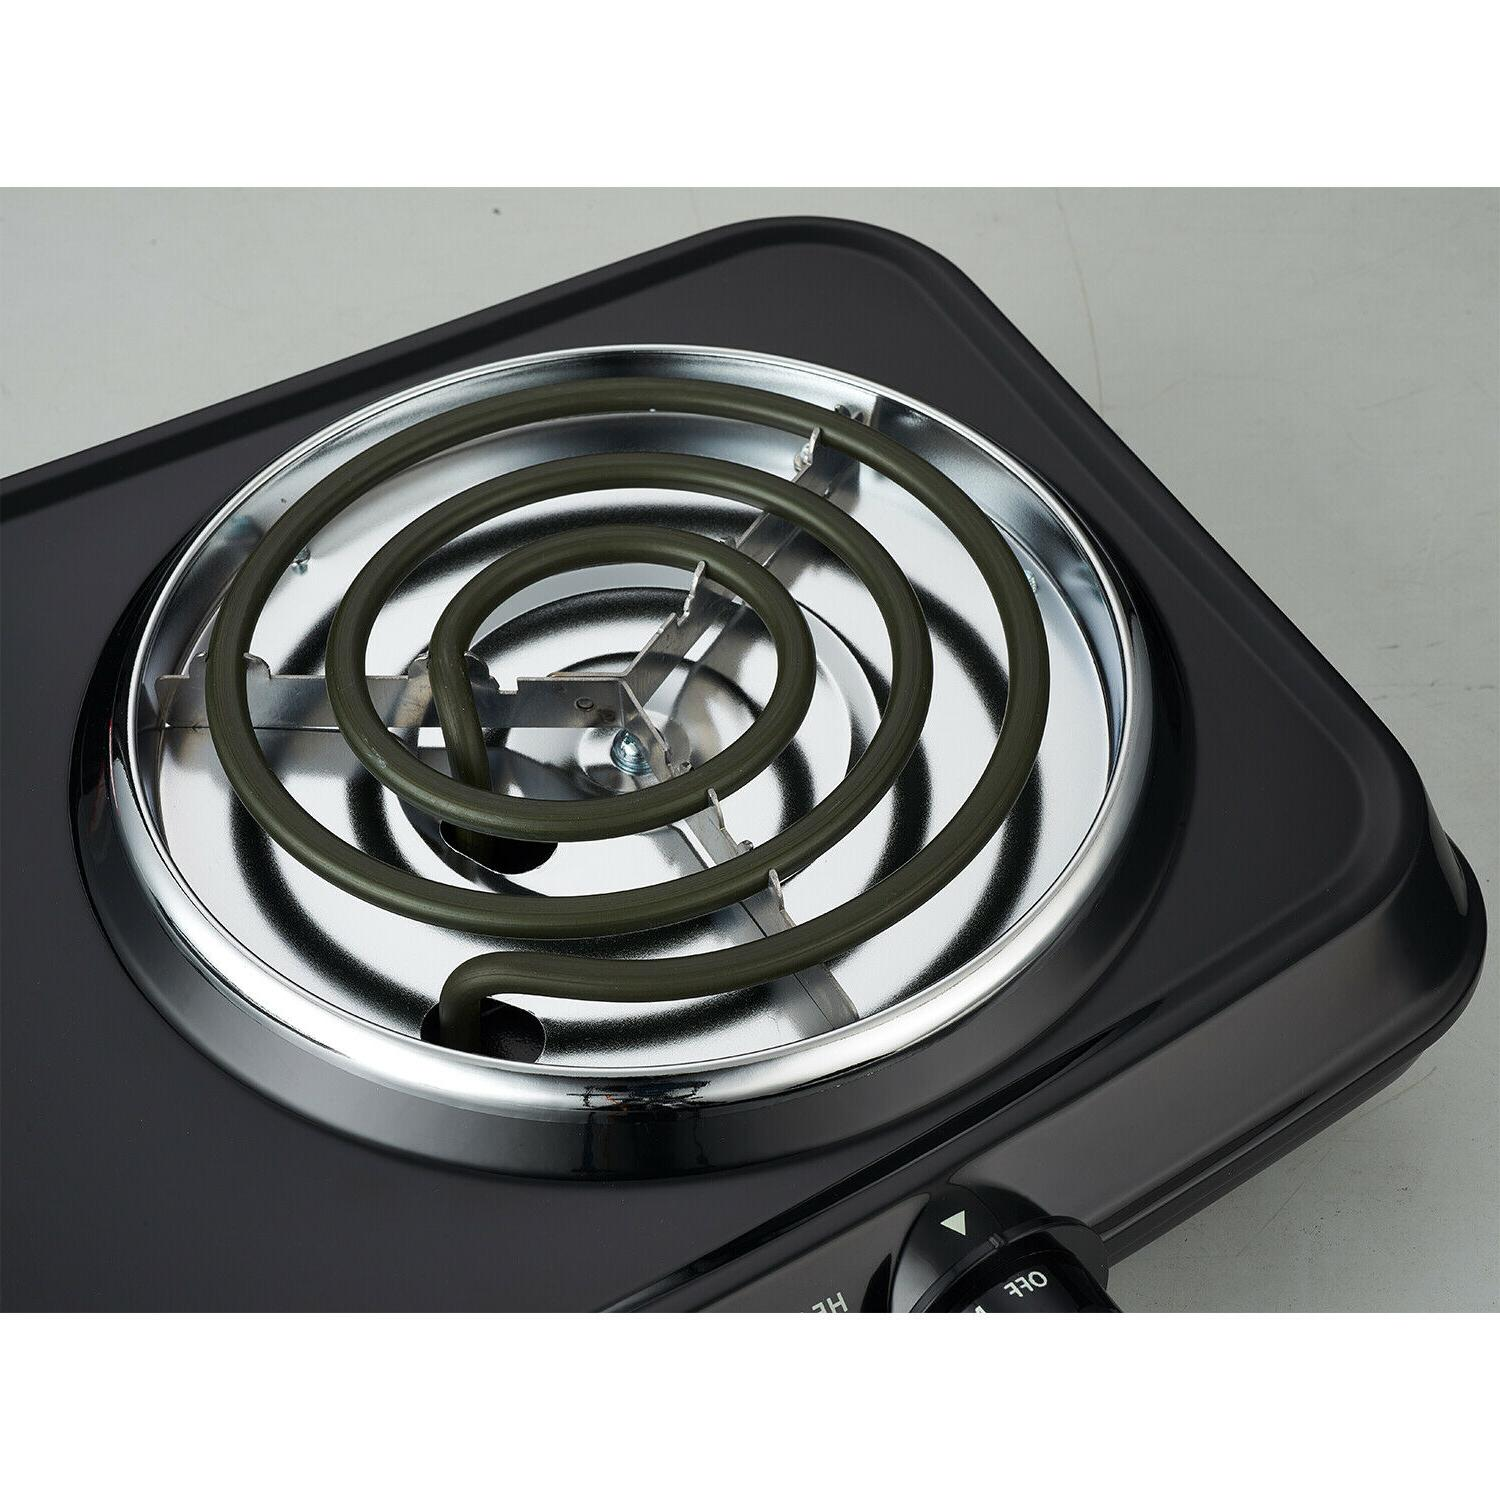 Electric Heating Plates Cooking Stove